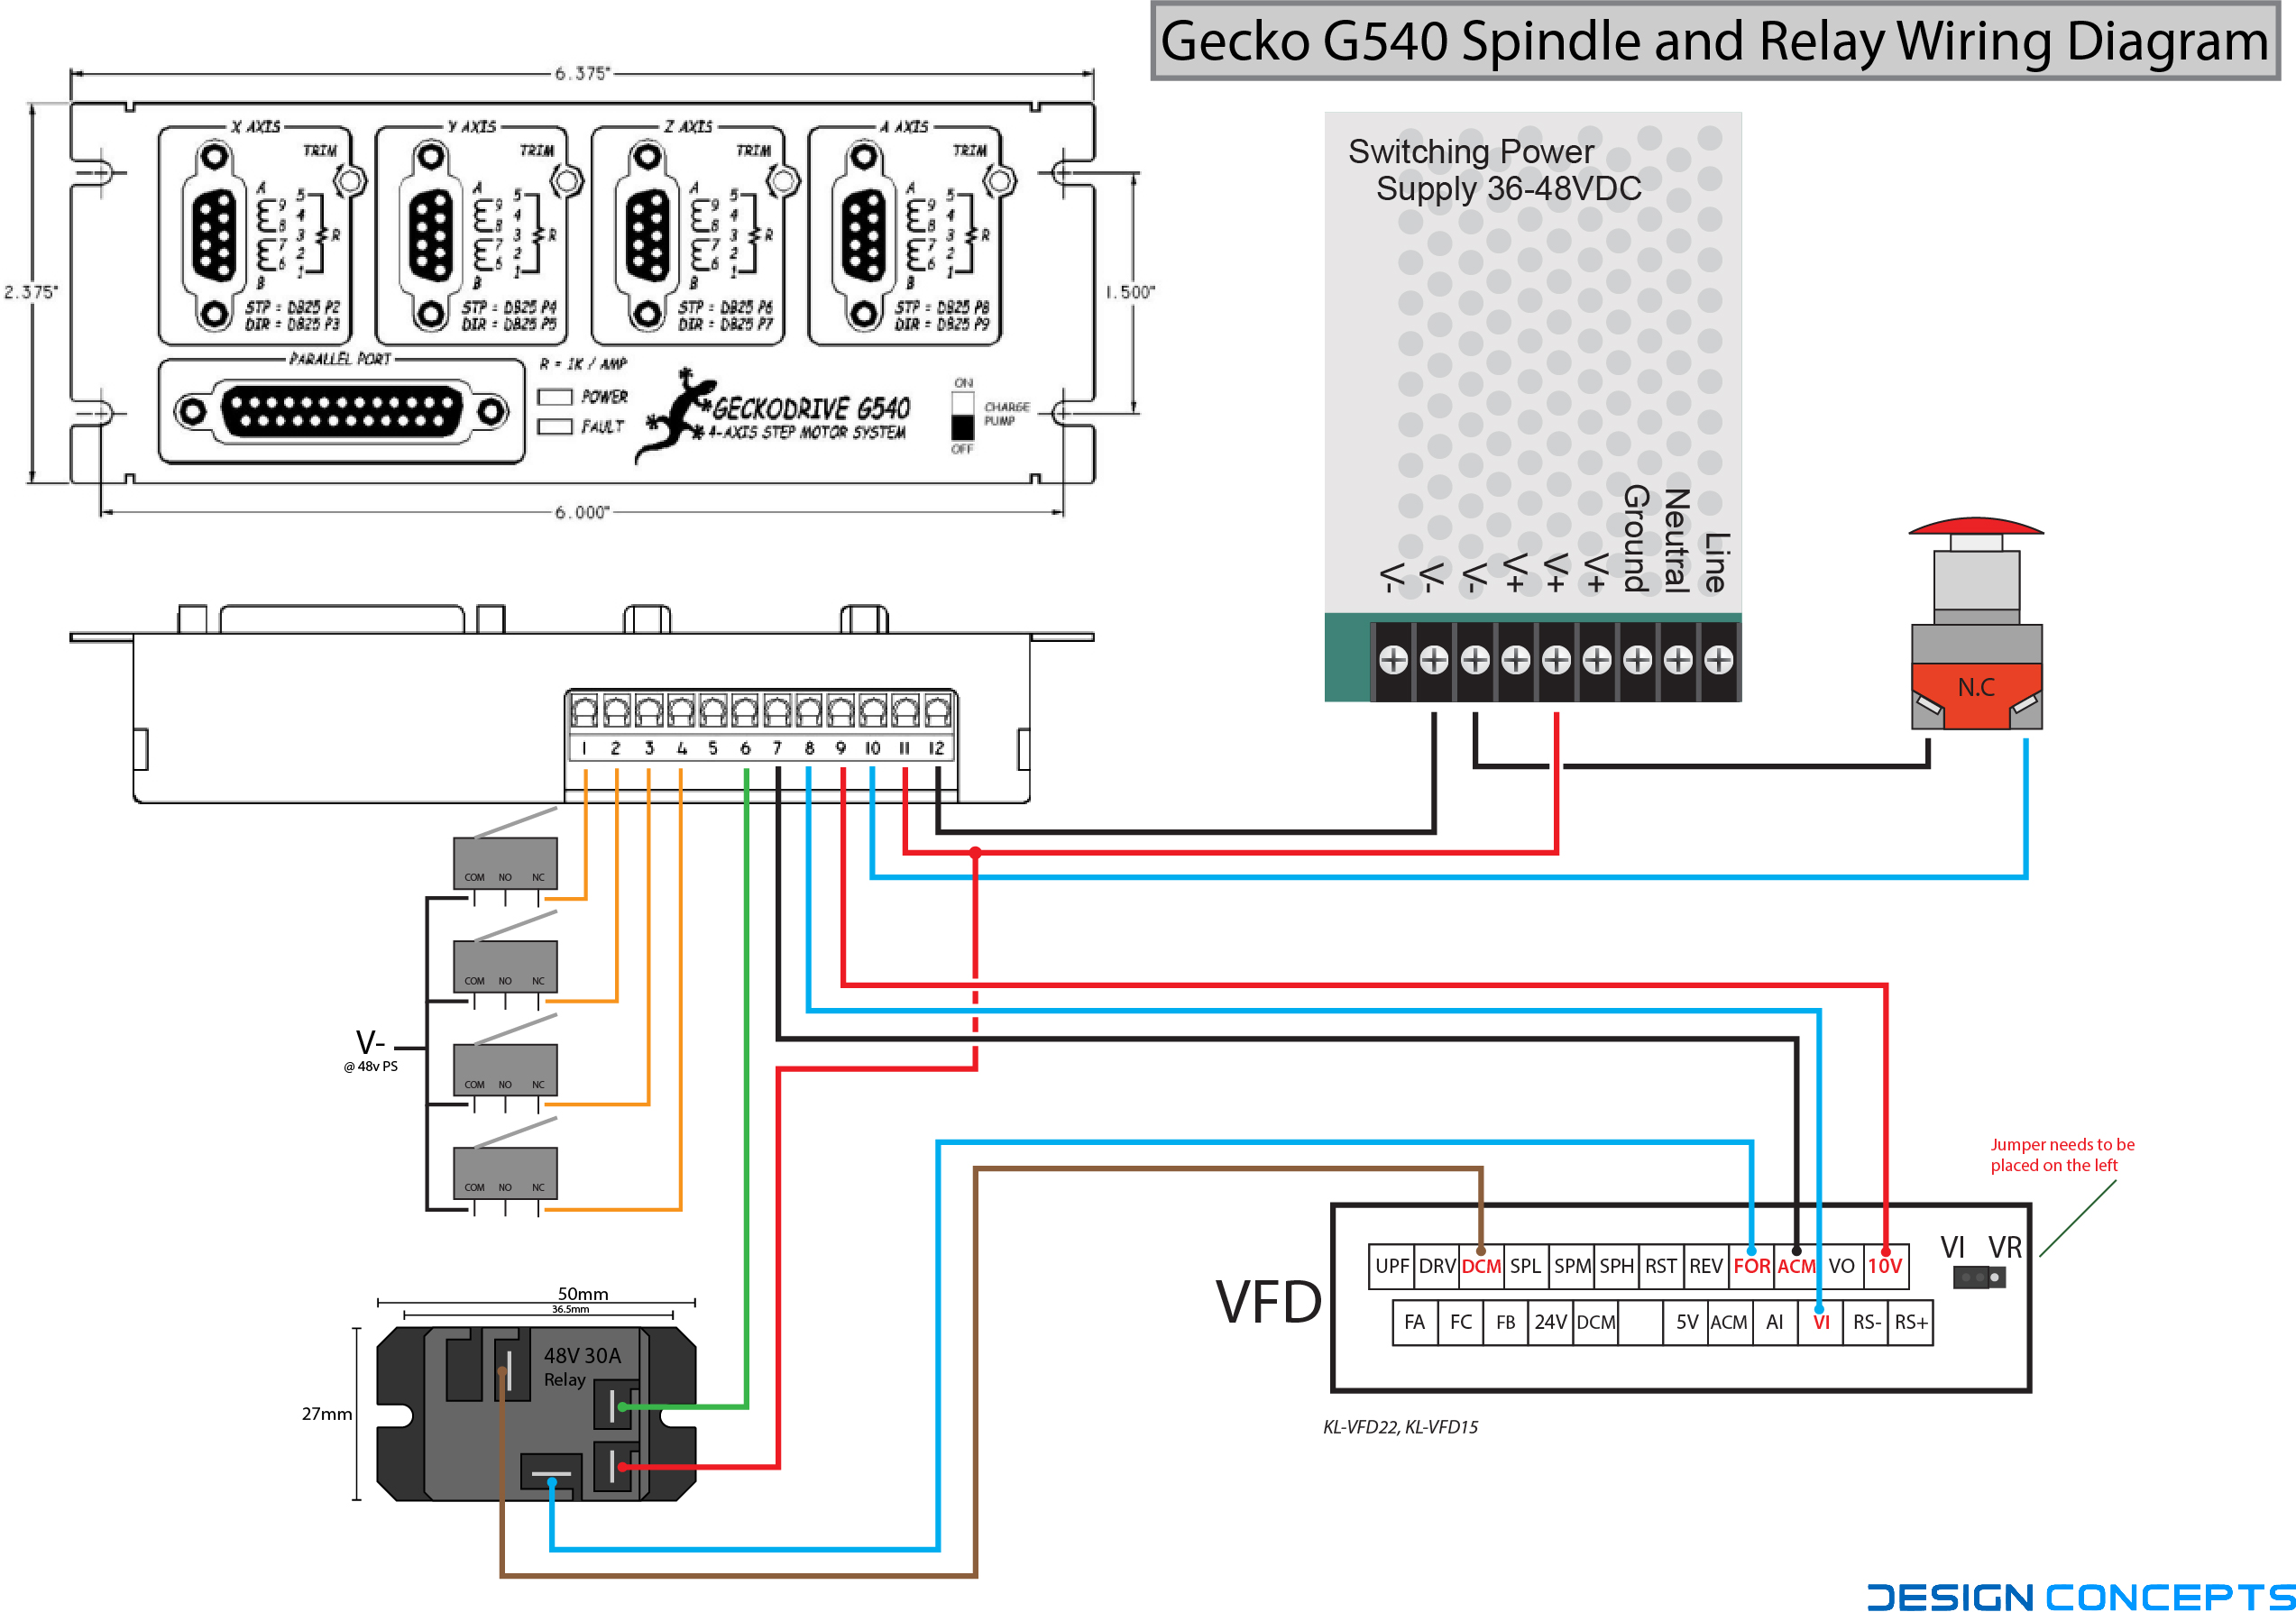 medium resolution of gecko g540 relay wiring diagram block and schematic diagrams u2022 ge oven wiring schematic kenmore 116 51612002 wiring diagram